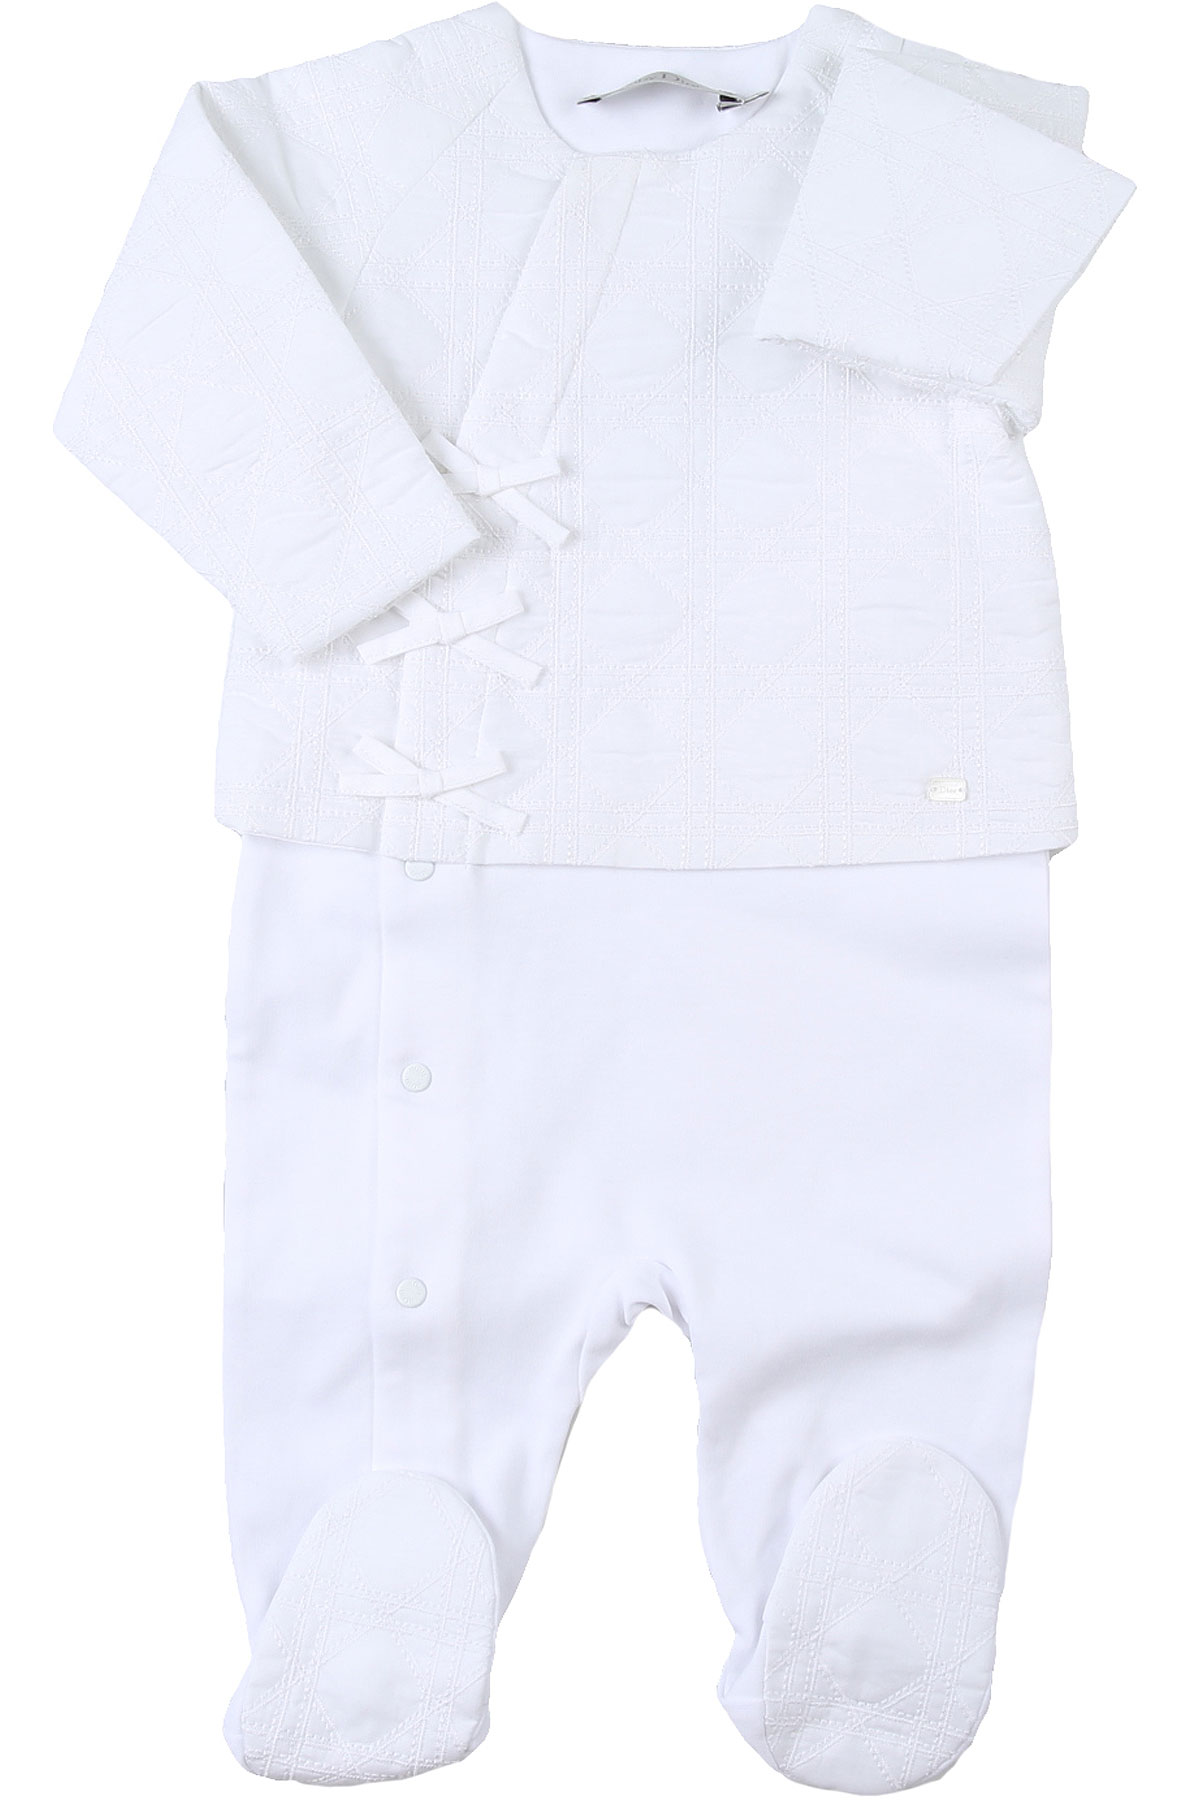 Baby Dior Baby Bodysuits & Onesies for Girls On Sale, White, Cotton, 2019, 1M 3M 6M